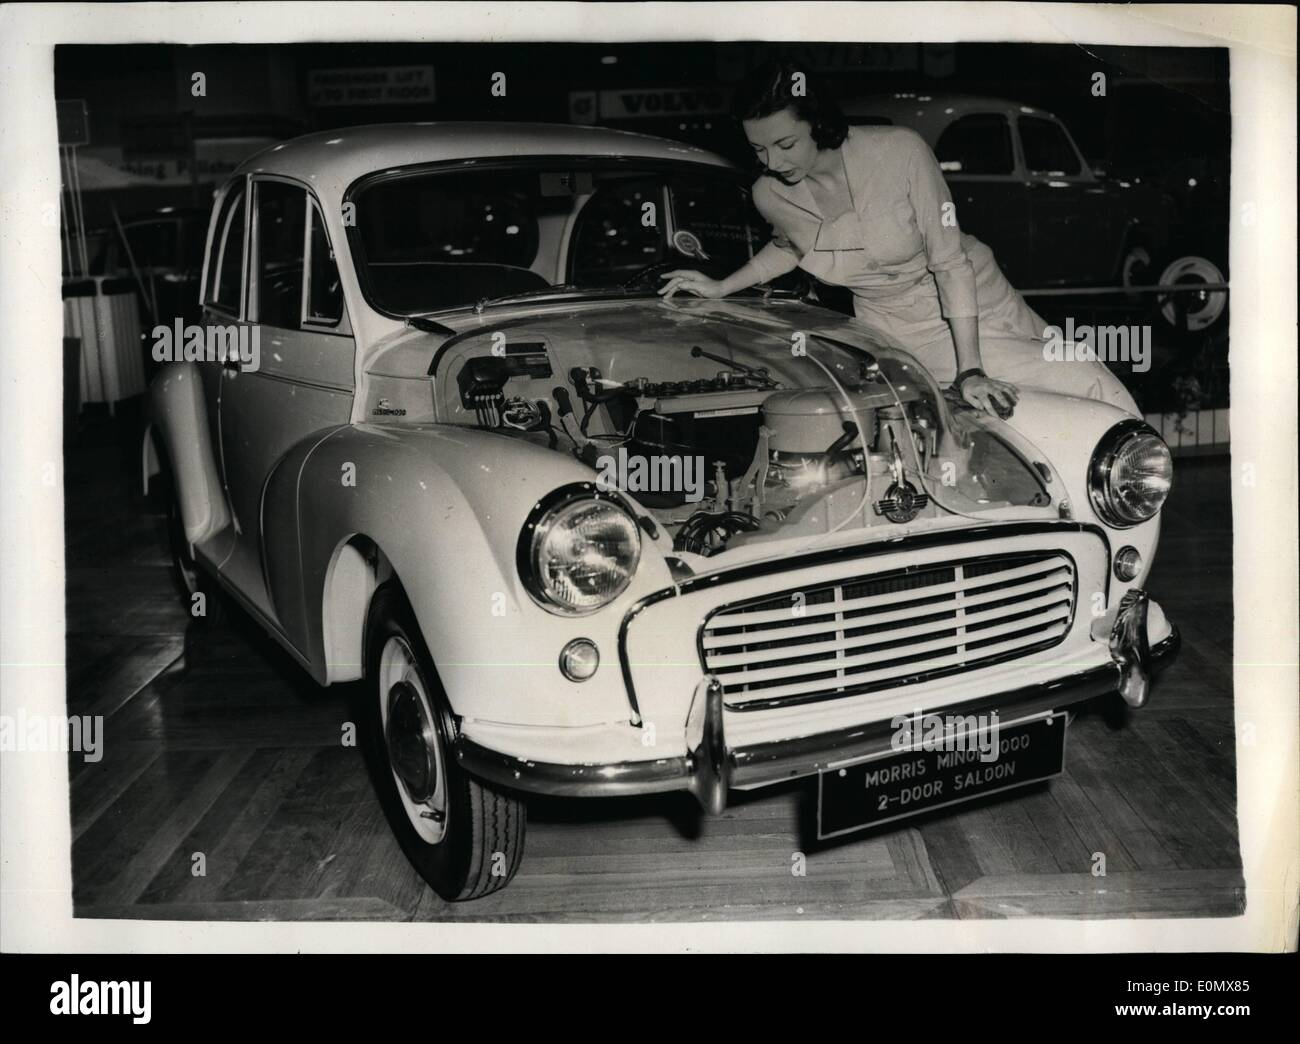 Oct. 10, 1956 - PREVIEW OF THE EARLS COURT MOTOR SHOW. THE NEW MORRIS MINOR.. hoto Shows:- Model Jinja Blakeley Stock Photo